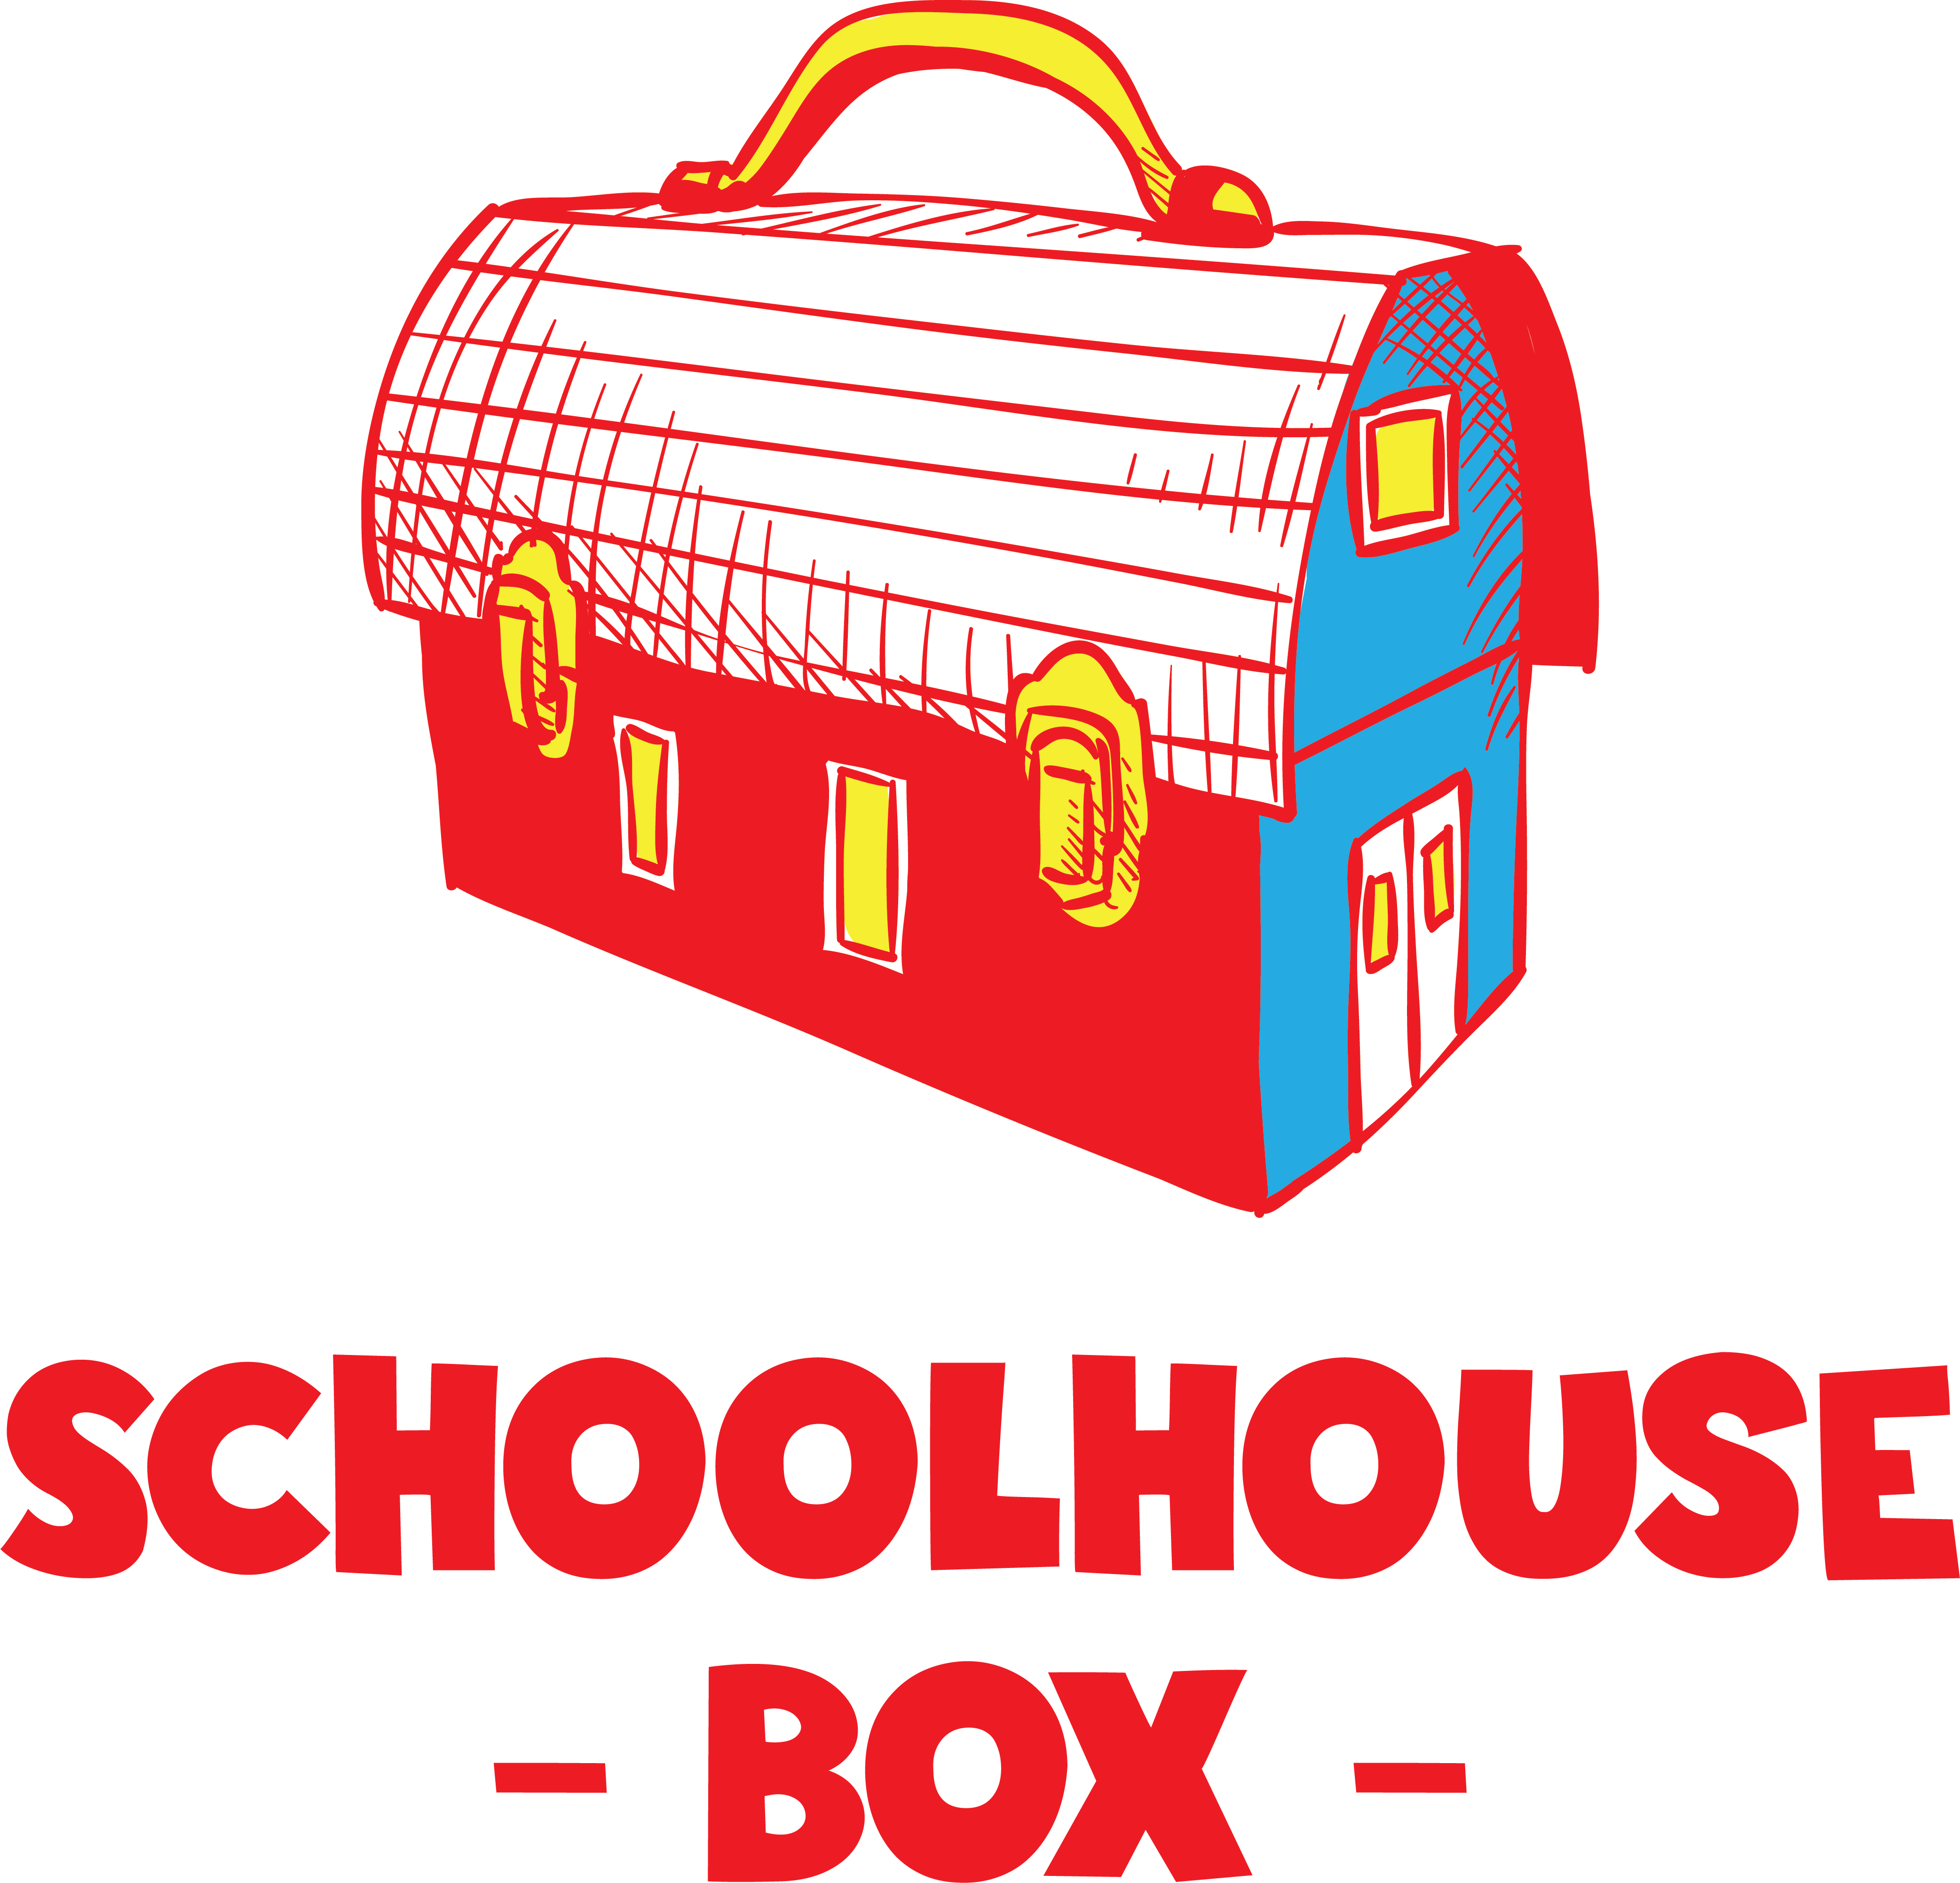 Schoolhouse box healthy lunches. Lunchbox clipart helathy